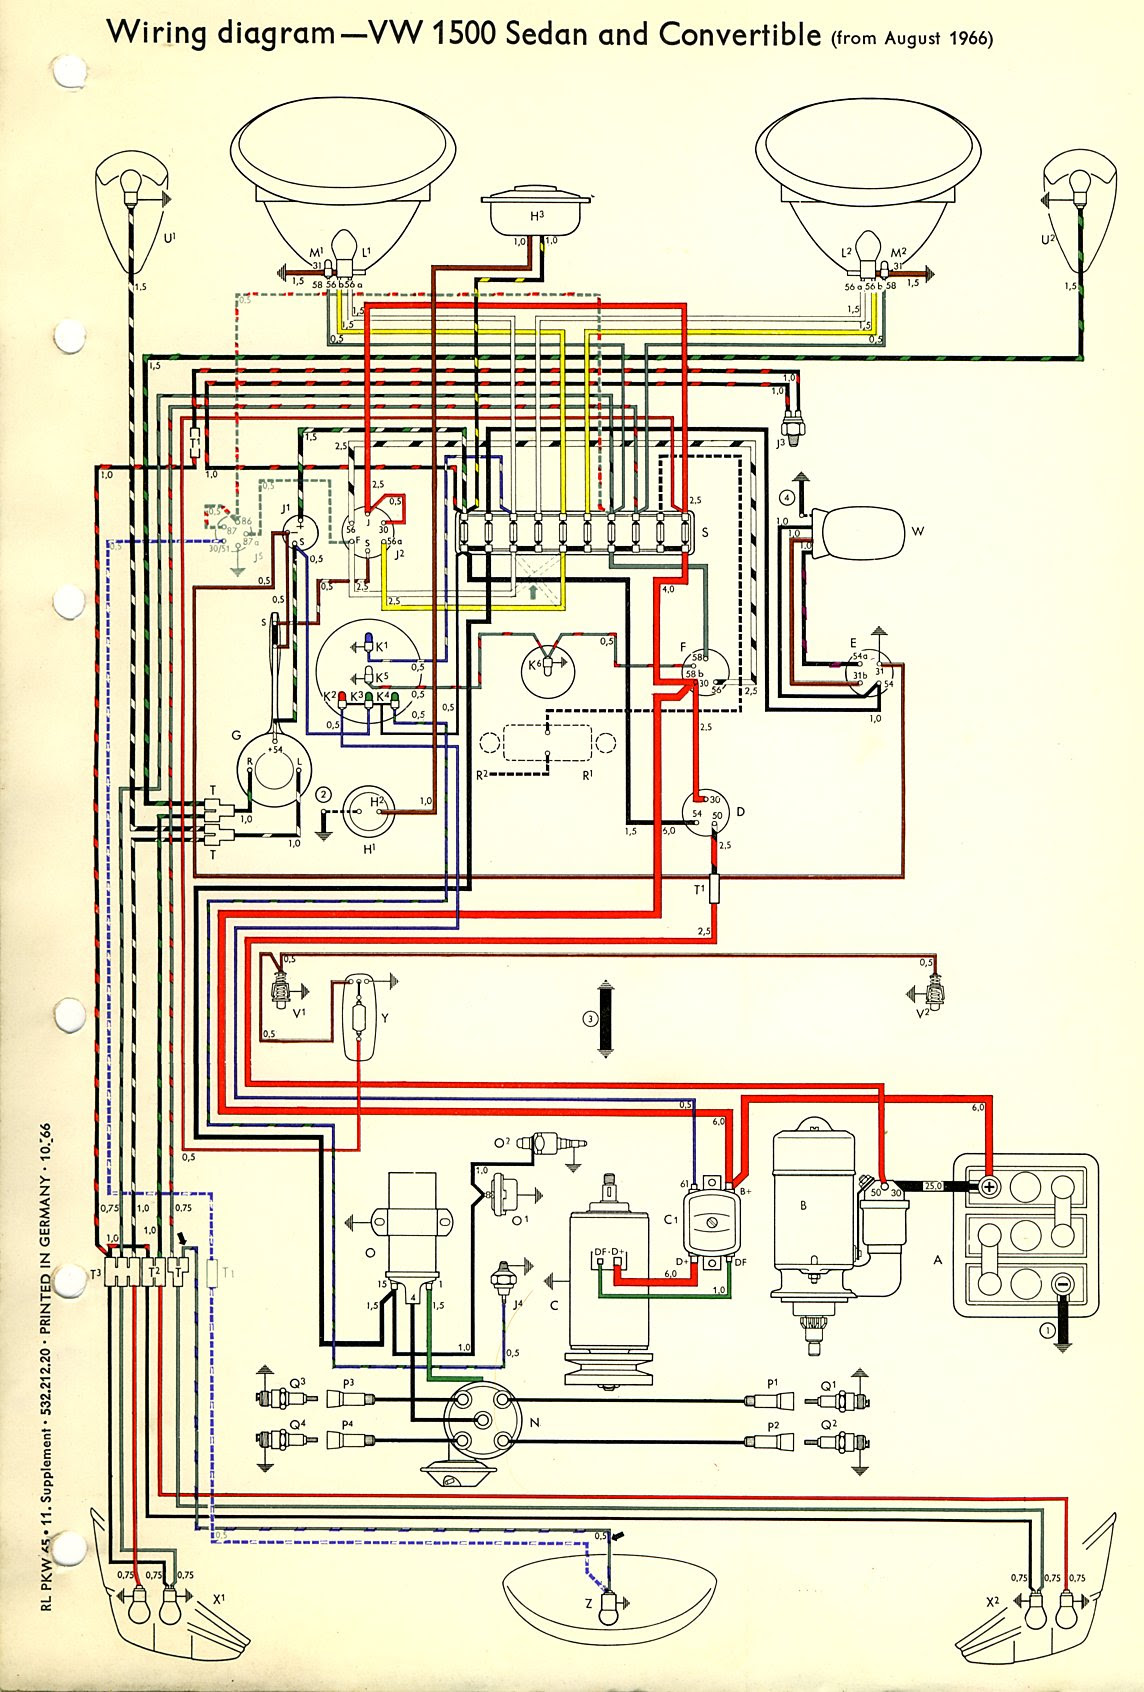 Diagram 1972 Vw Beetle Wiring Diagram Full Version Hd Quality Wiring Diagram Diagramm Discountdellapiastrella It